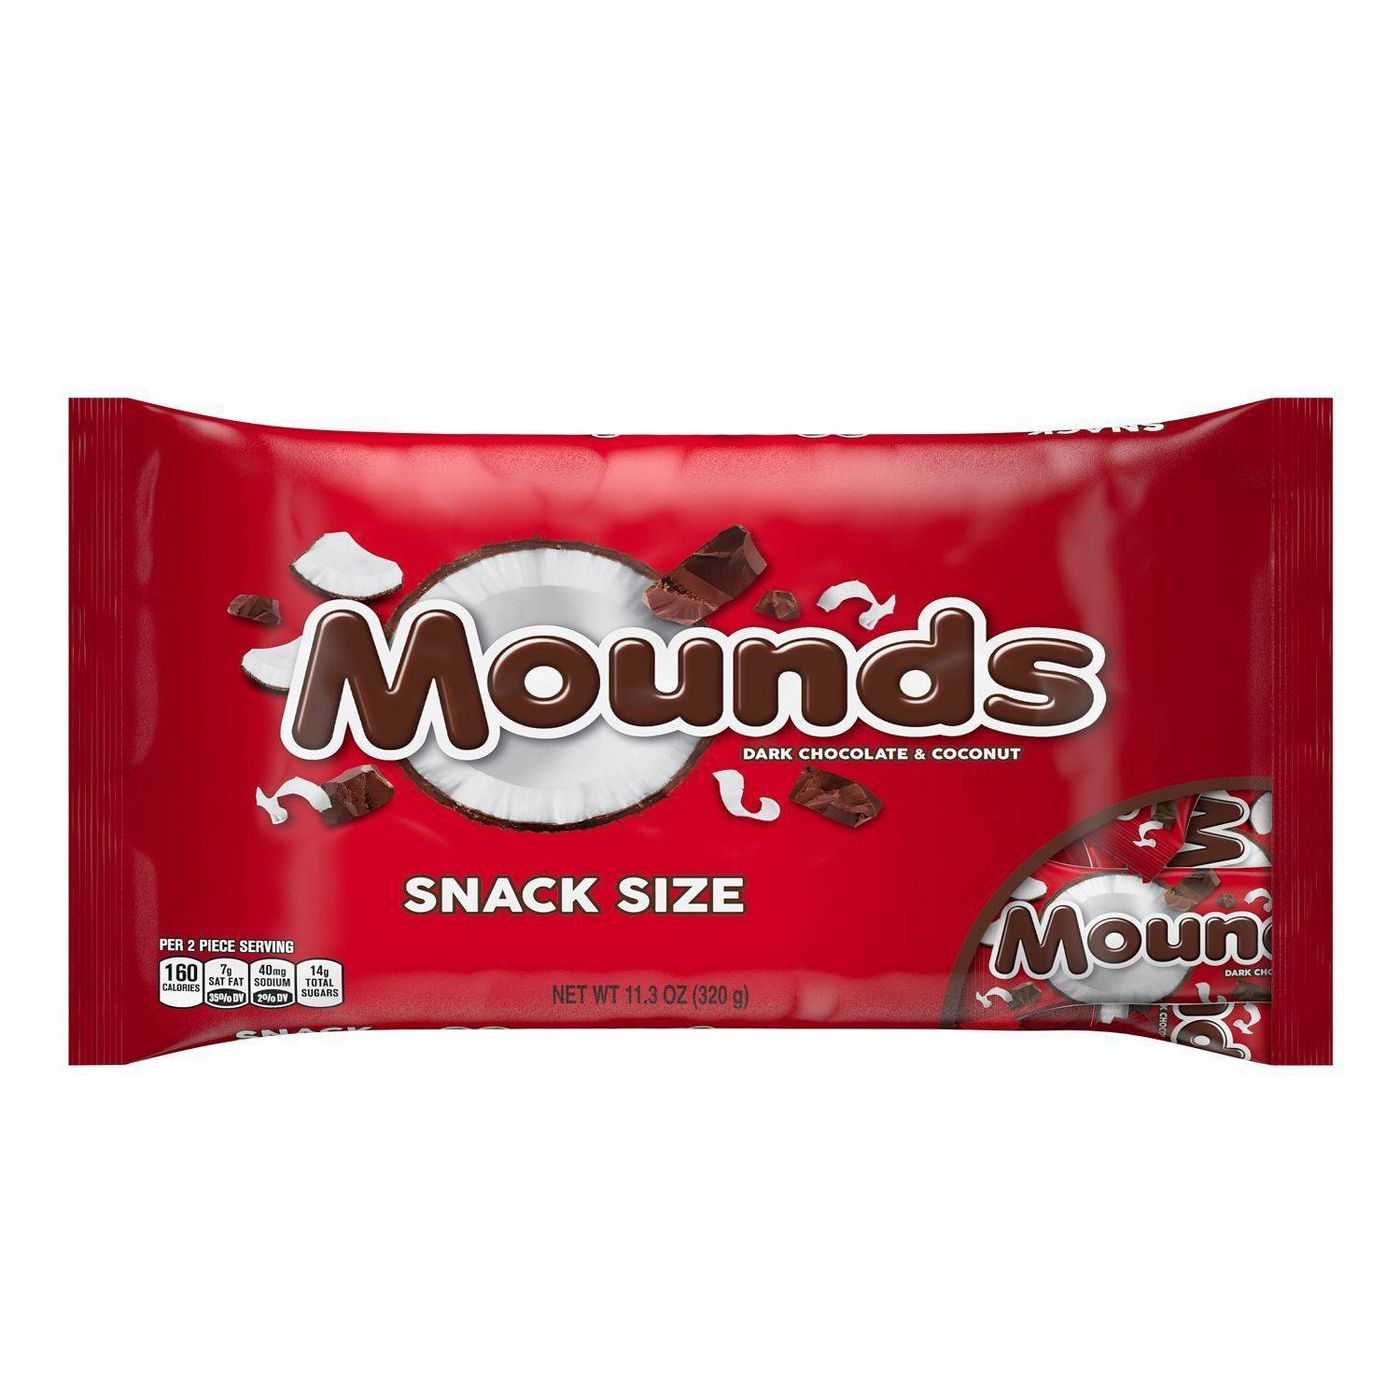 red bag of mounds